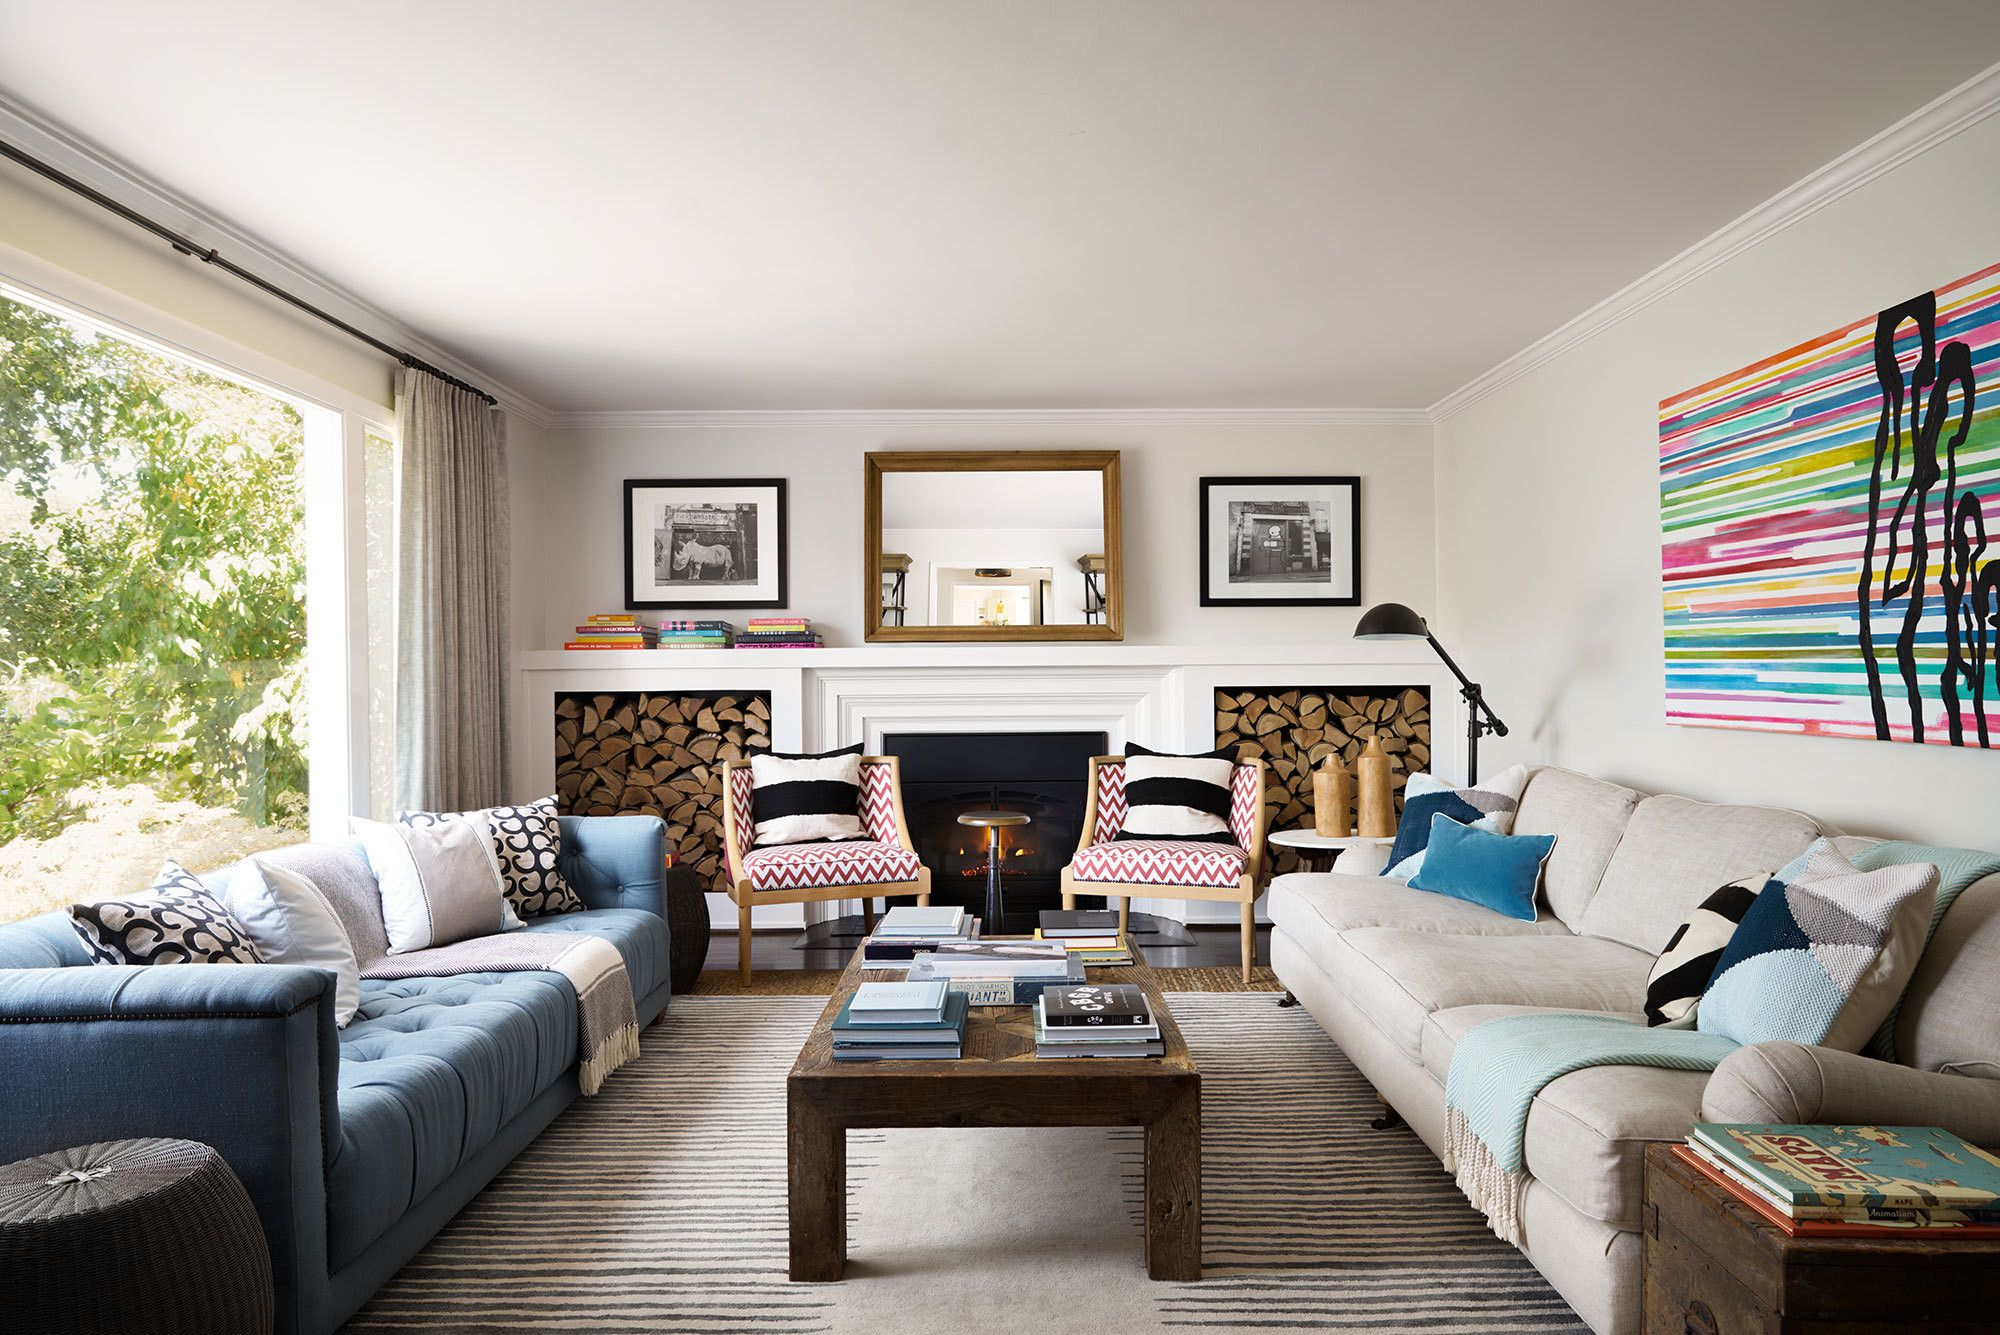 Battle Of The Sofa Arrangements: Can You Guess Which Saves Space?